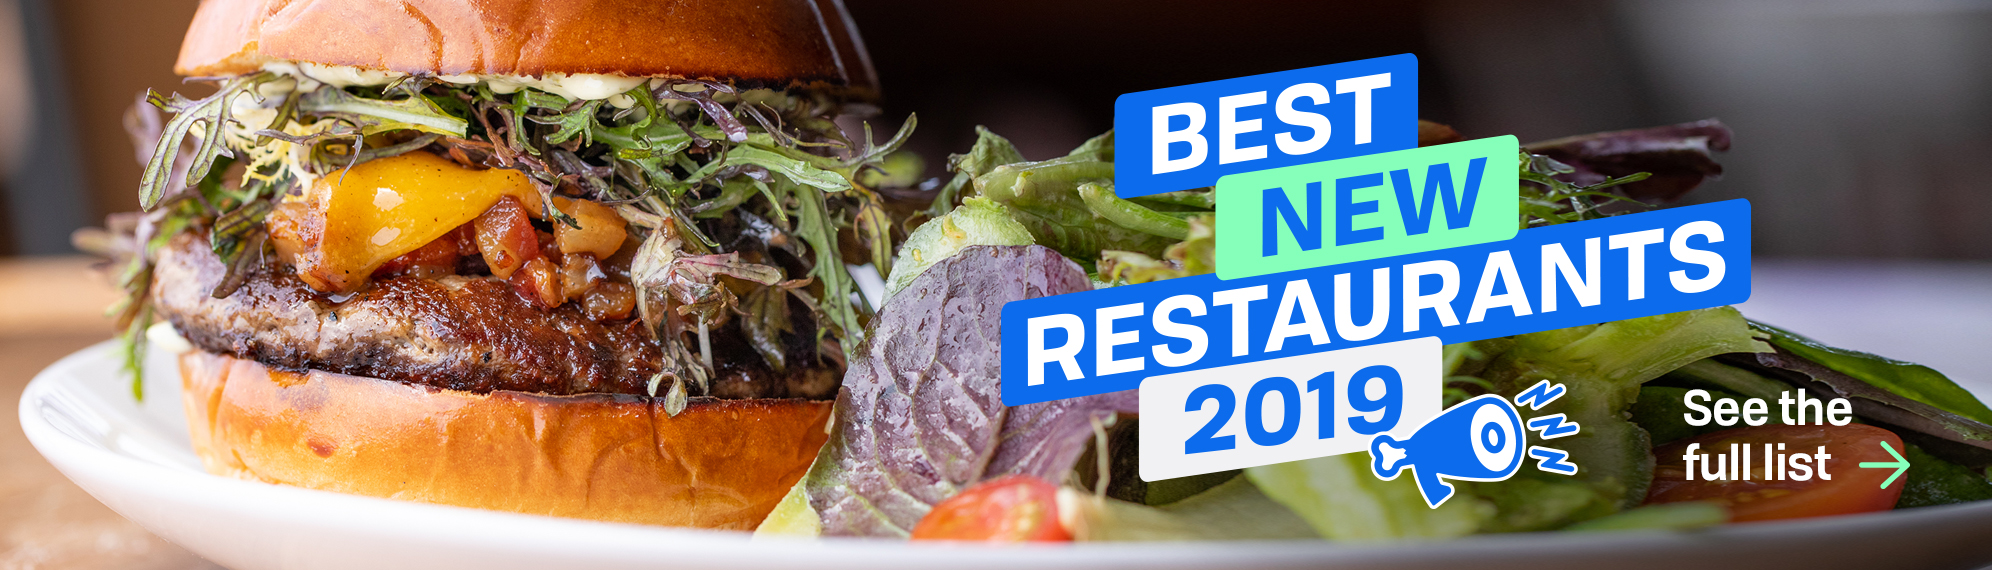 See the full list of LA's Best Restaurants Of 2019.